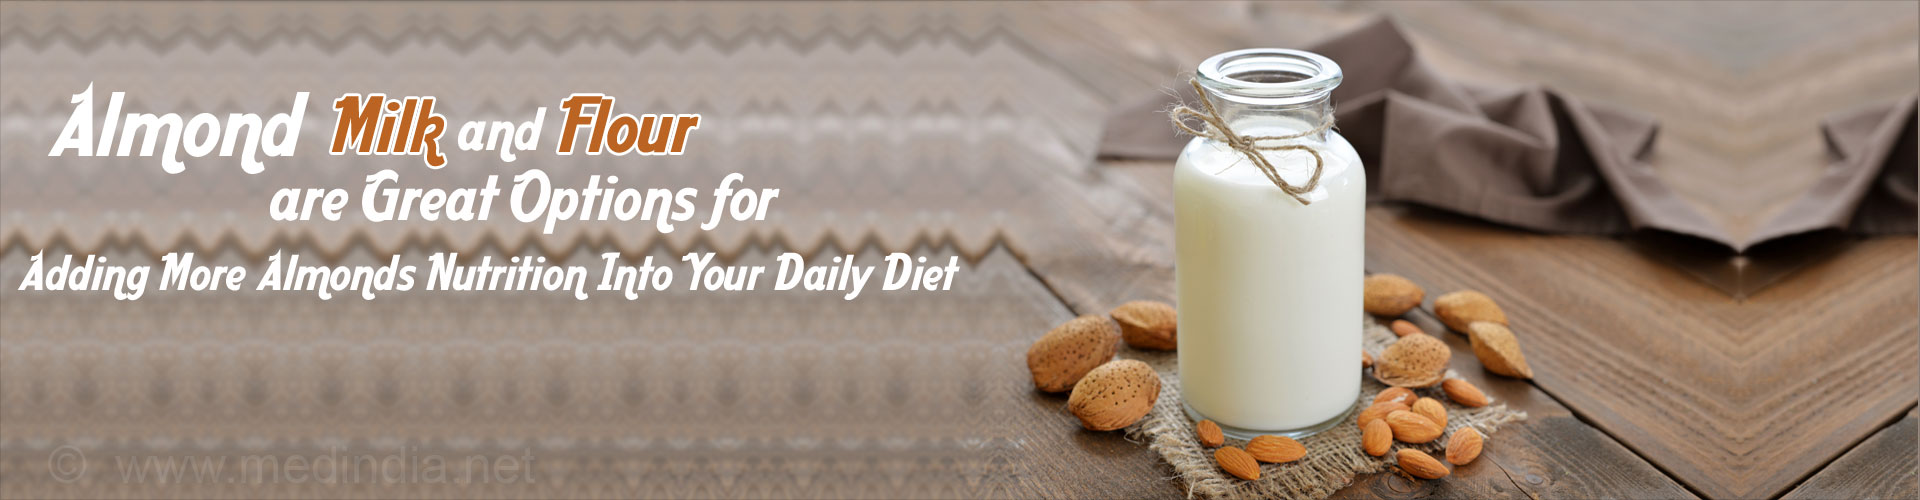 Almond Milk and Flour are Great Options for Adding More Almond Nutrition Into Your Daily Diet